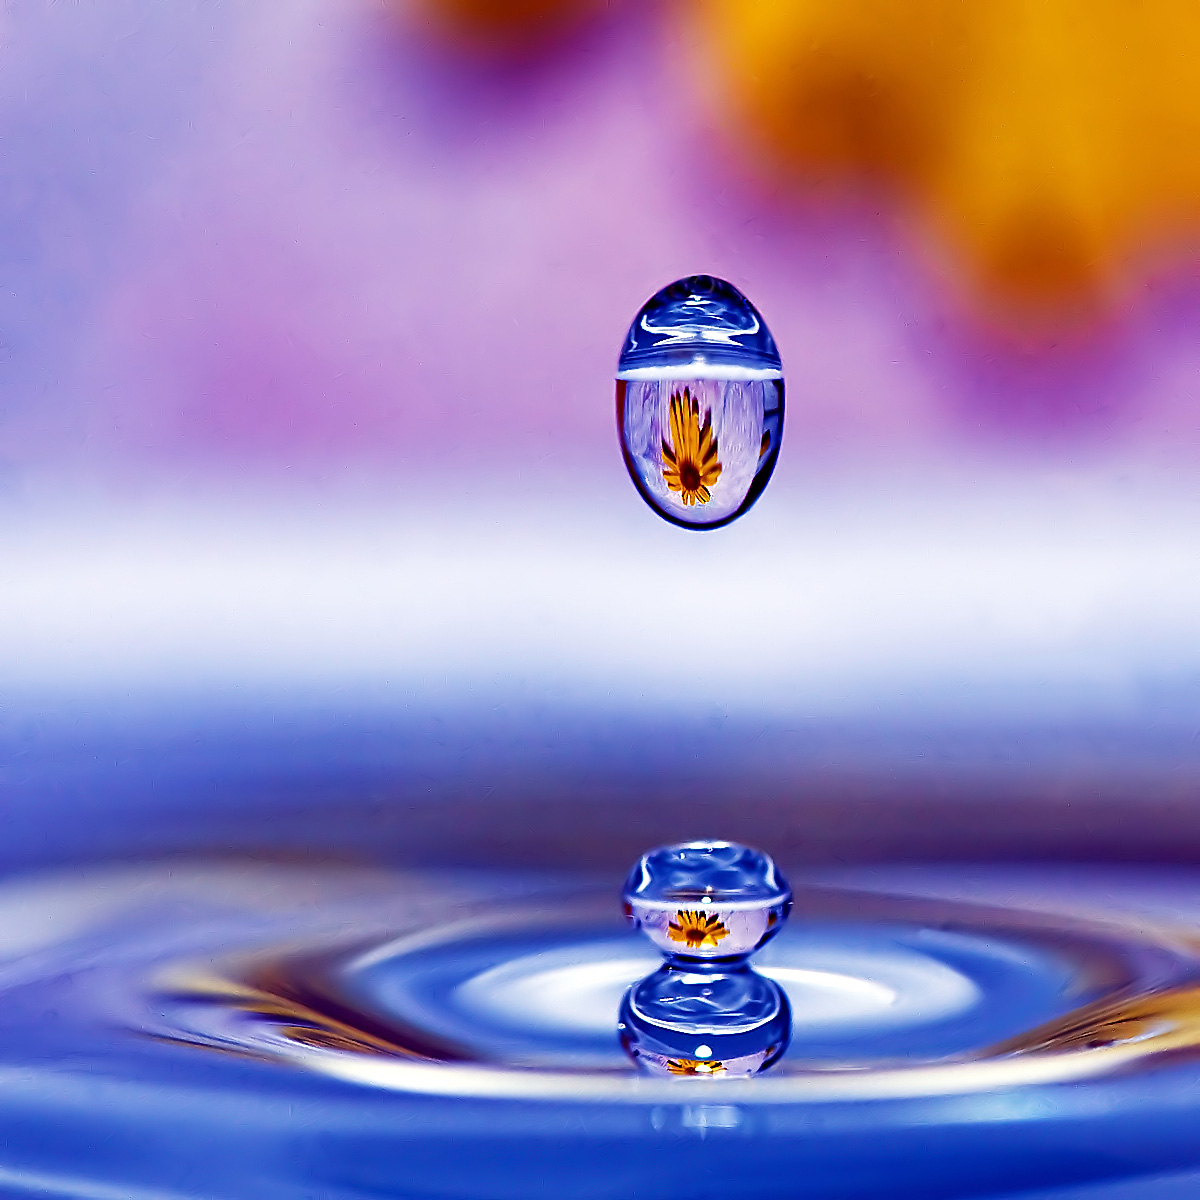 water and flower...